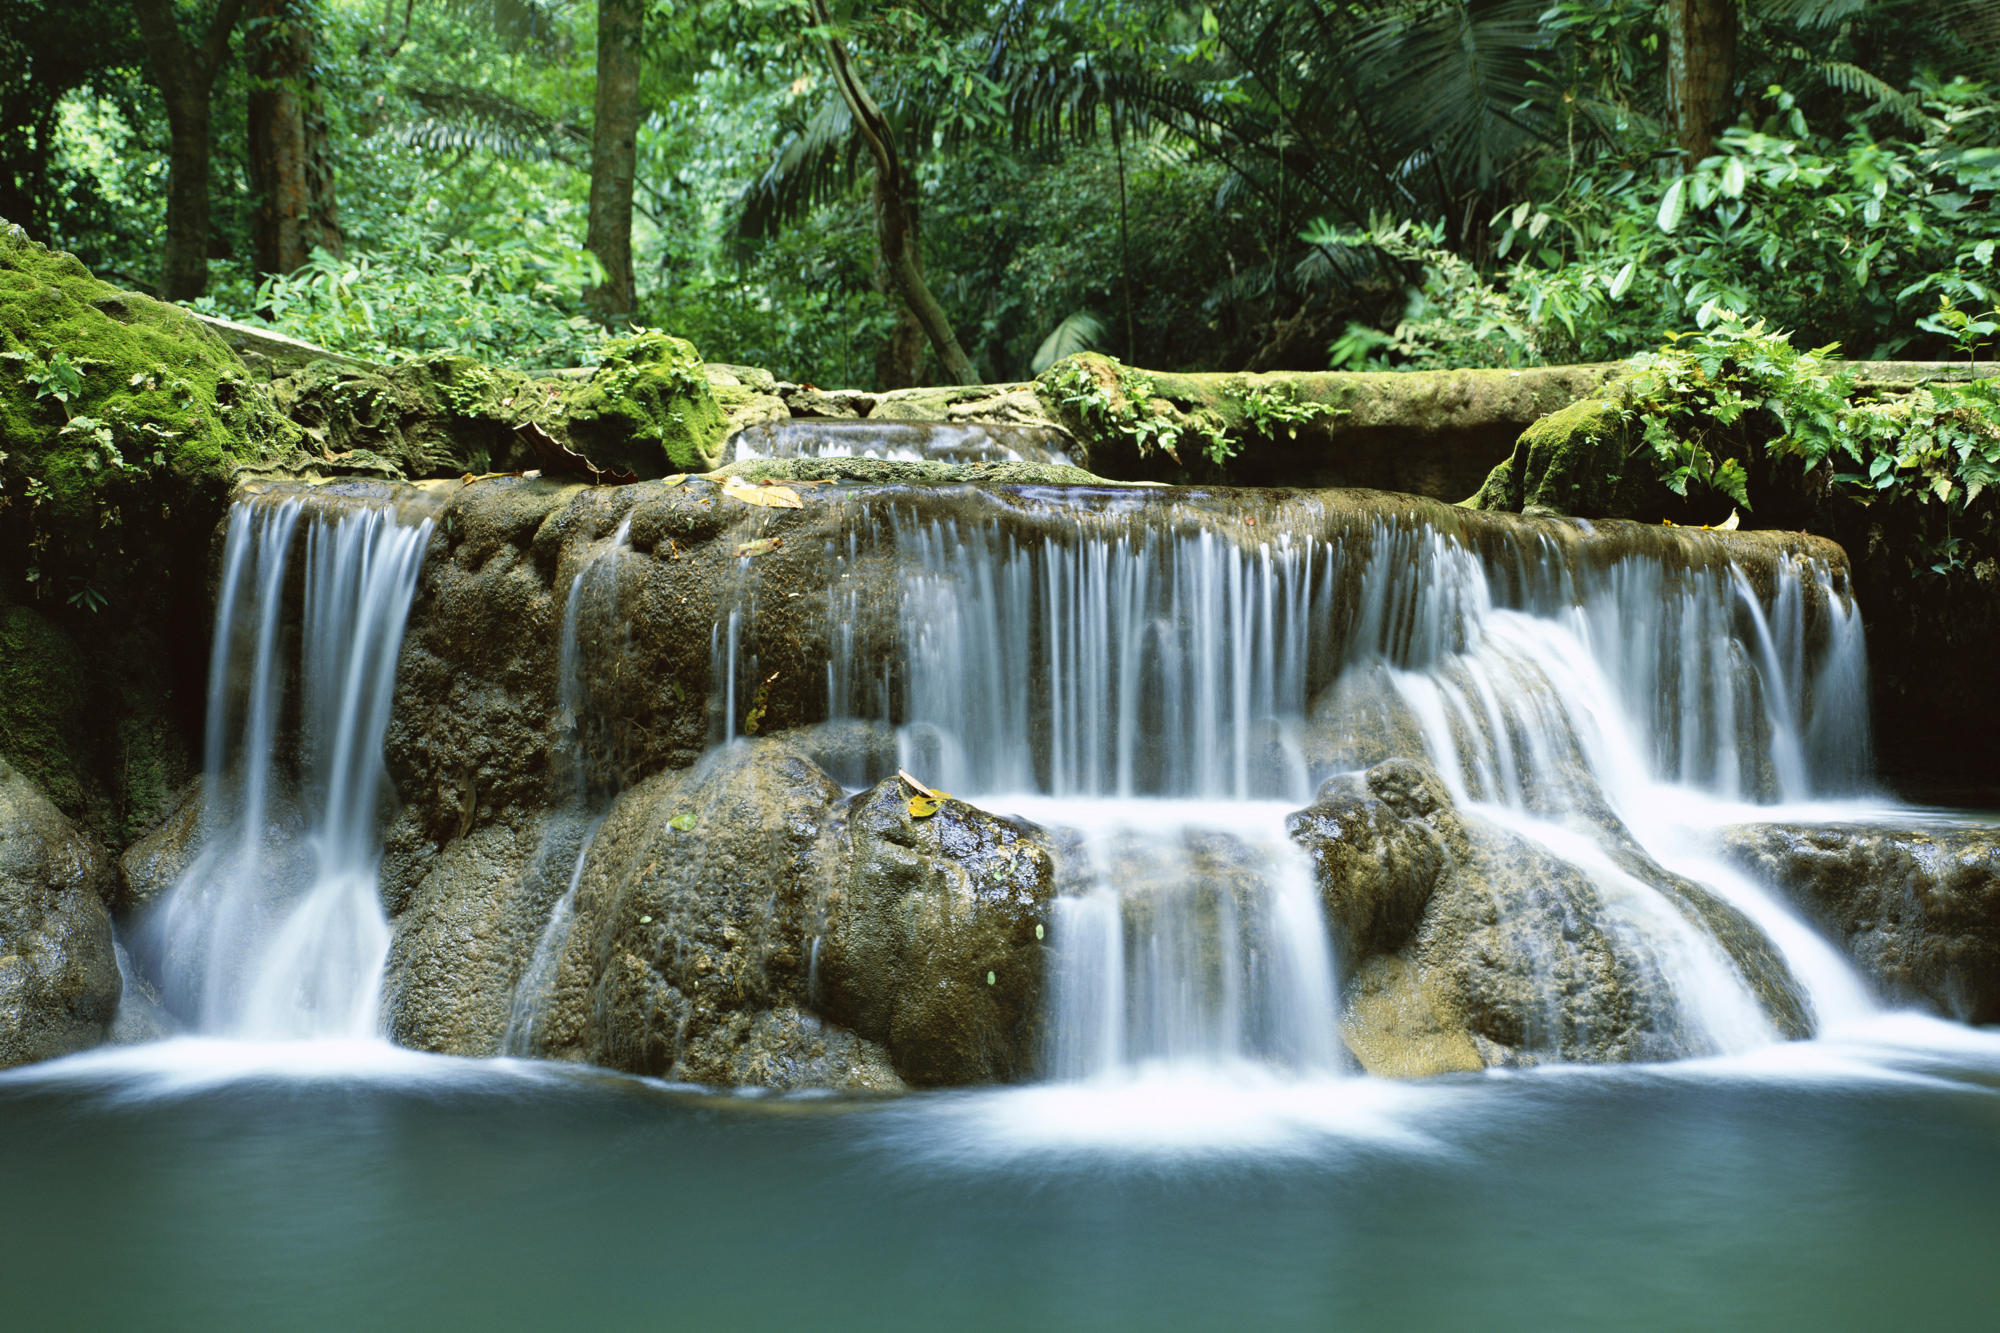 free download live waterfall wallpaper which is under the waterfall 2000x1333